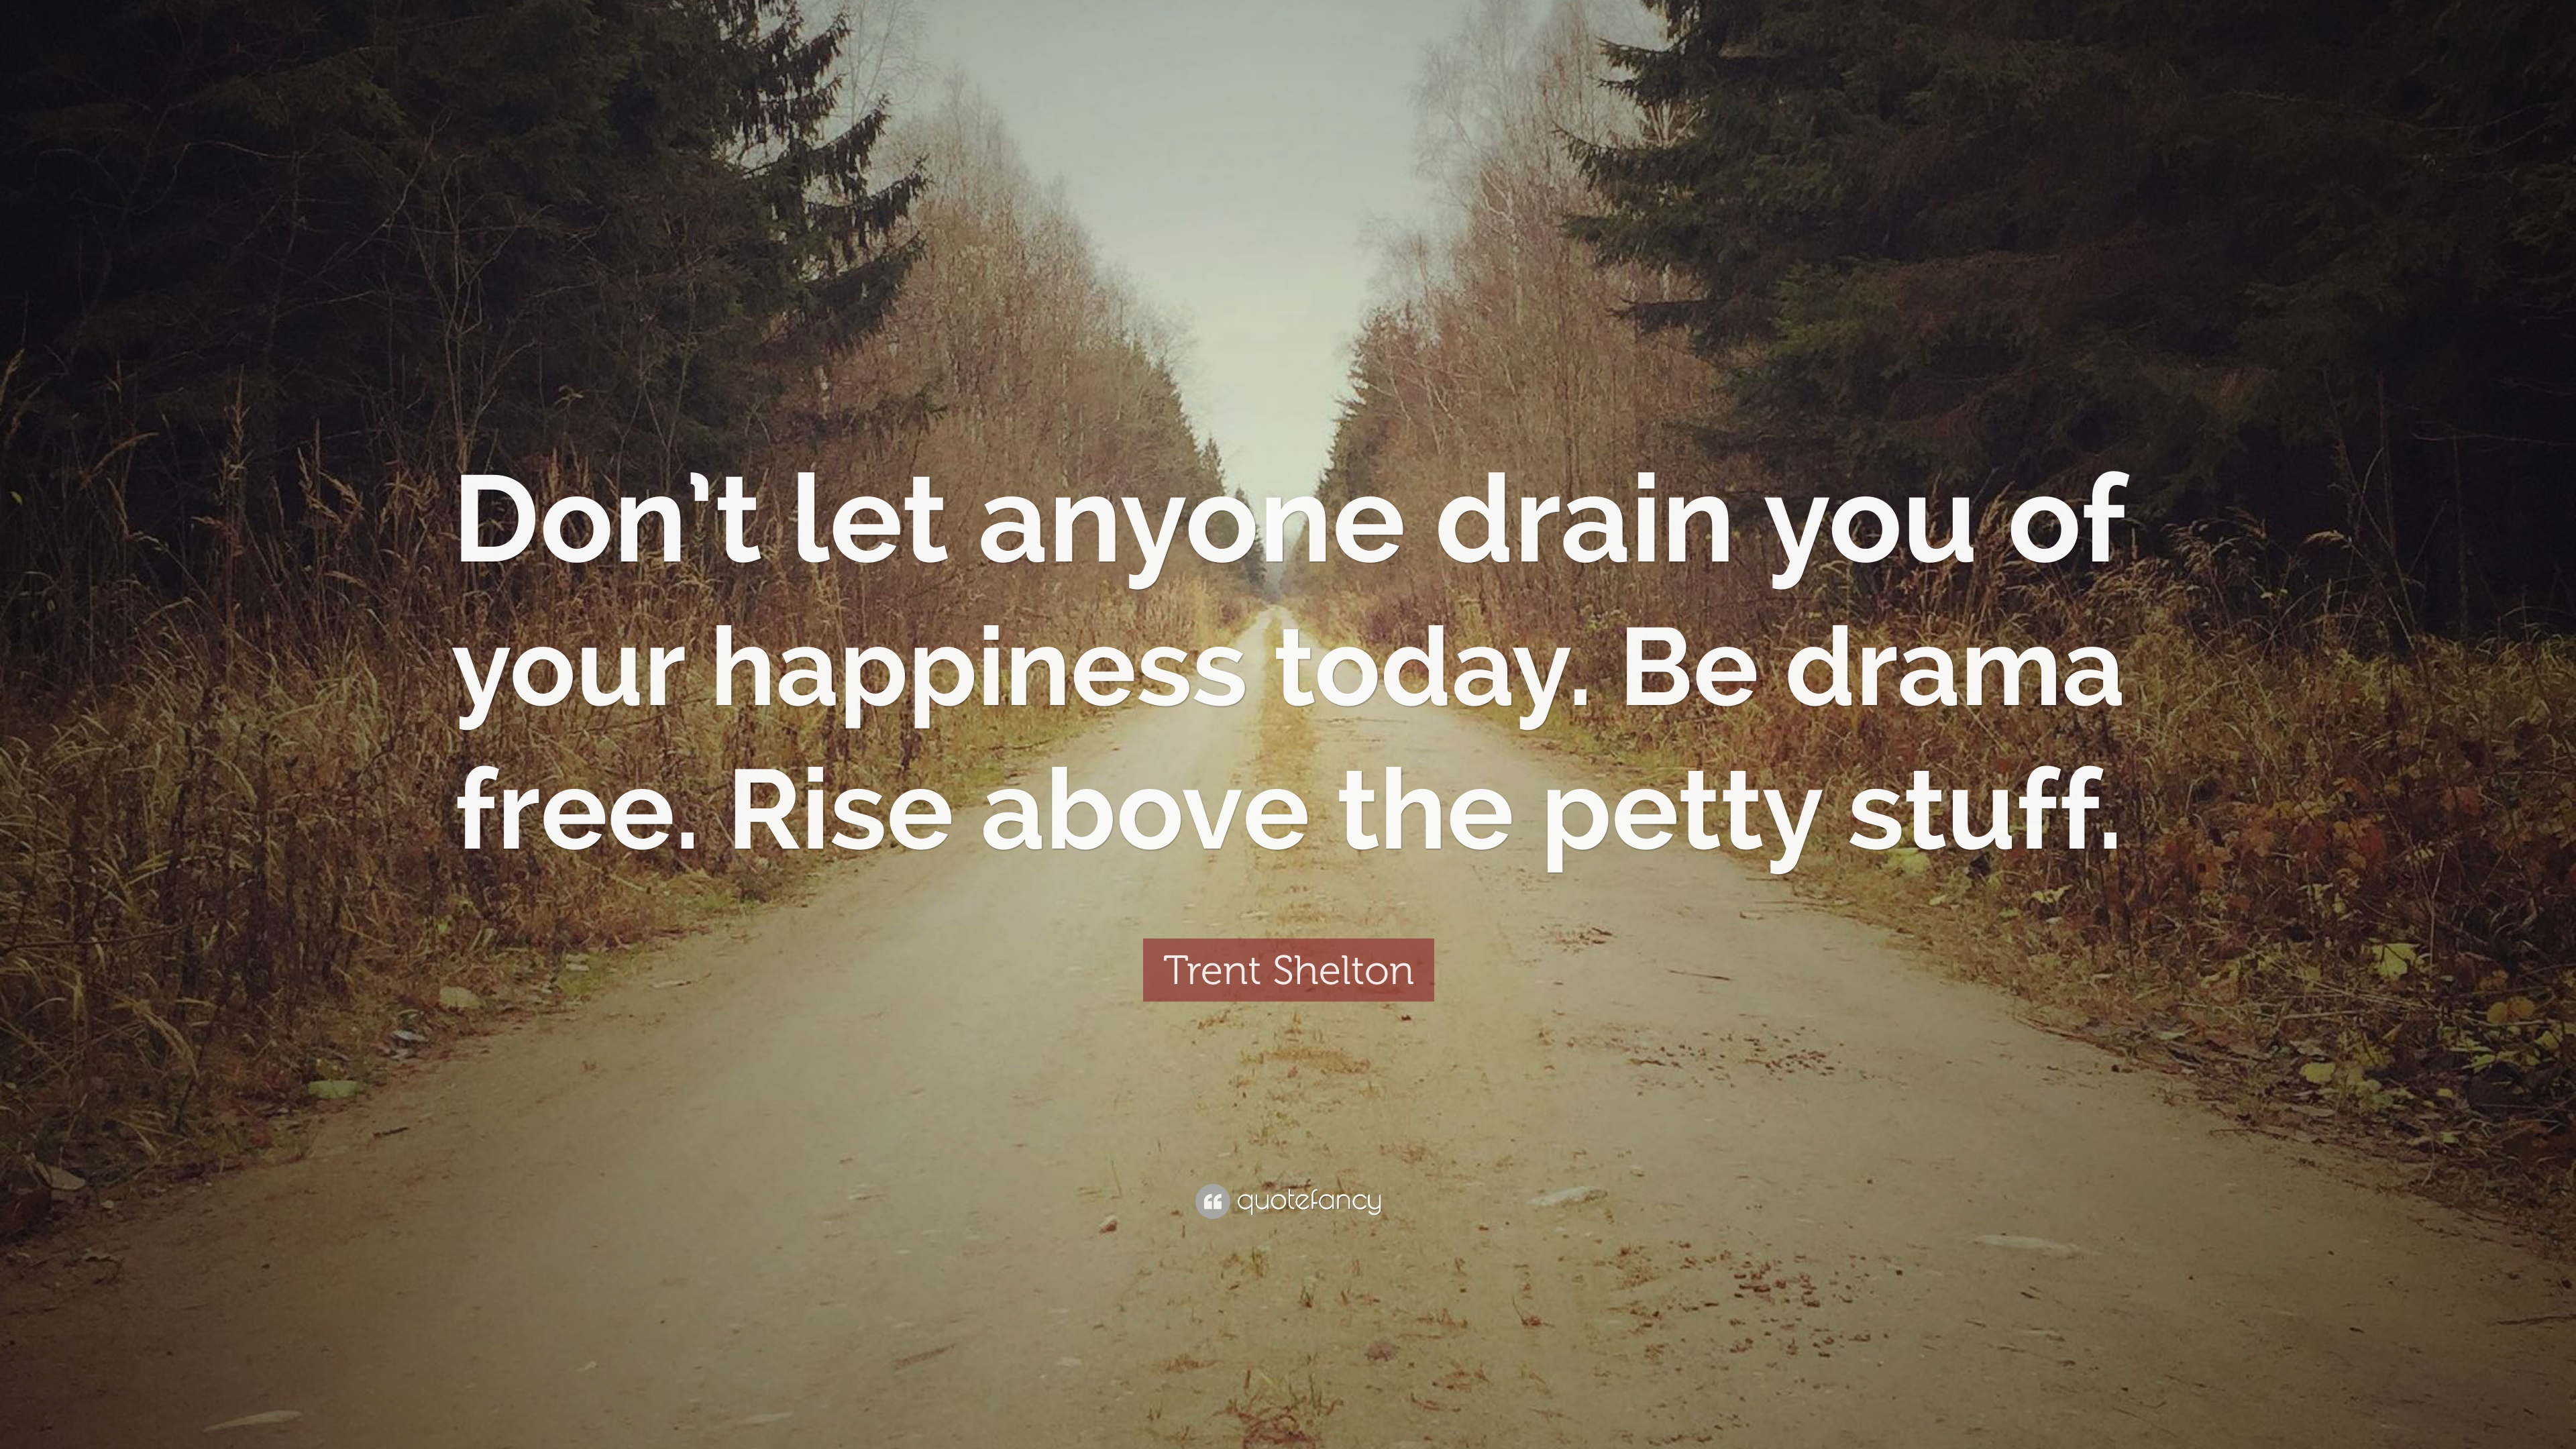 Trent Shelton Quotes | Trent Shelton Quote Don T Let Anyone Drain You Of Your Happiness